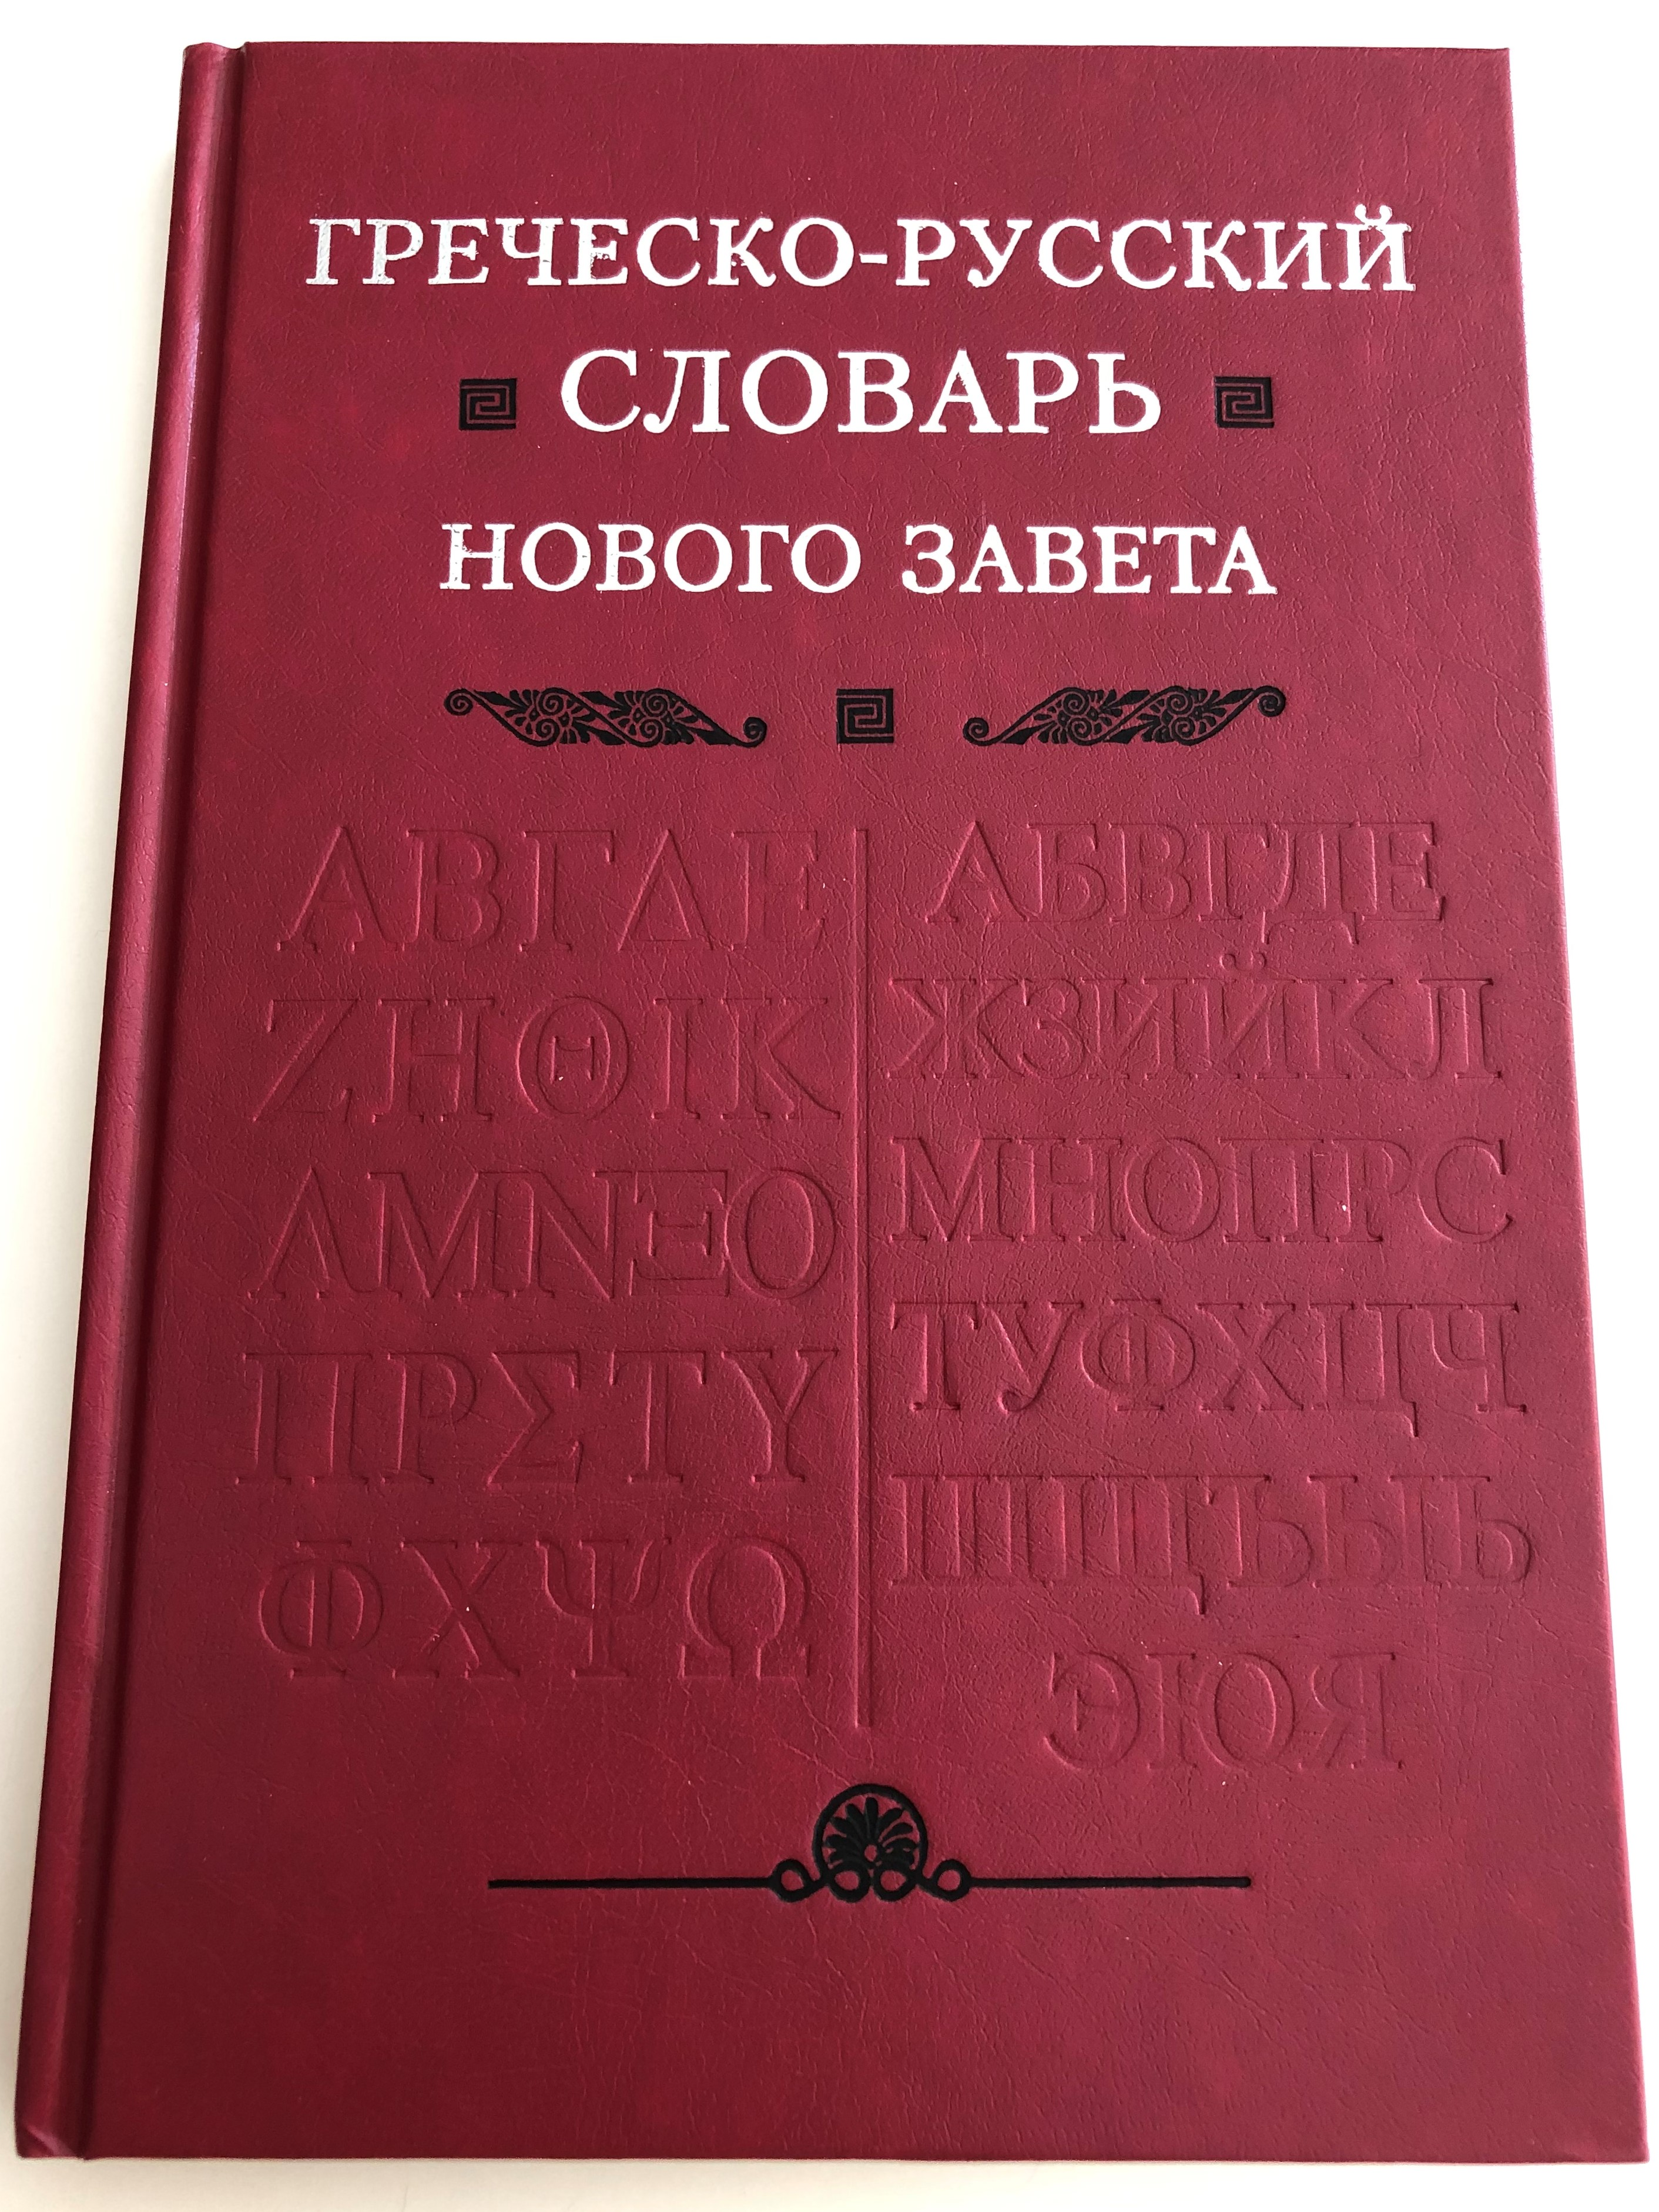 greek-russian-dictionary-of-the-new-testament-russian-translation-of-a-concise-greek-english-dictionary-of-the-new-testament-by-barkley-m.-newman-hardcover-200-russian-bible-society-1-.jpg